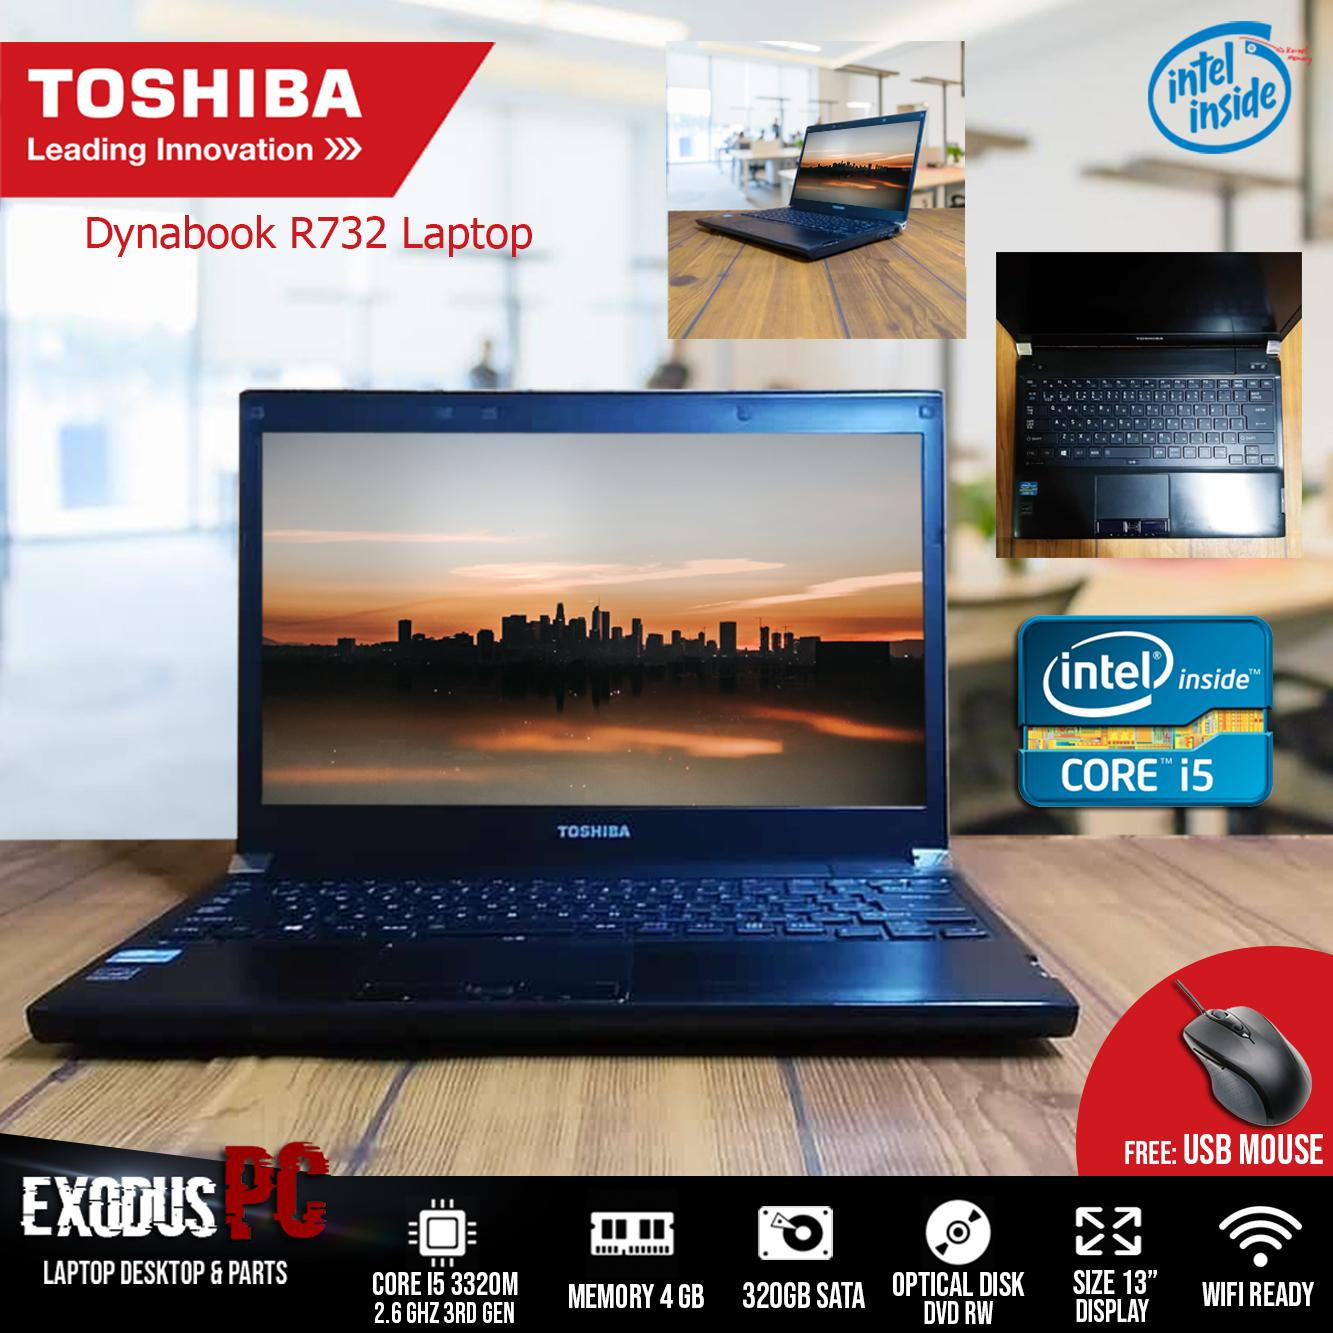 LAPTOP TOSHIBA DYNABOOK R732 i5-3320M (3rd Gen) 4GB 320GB with MOUSE